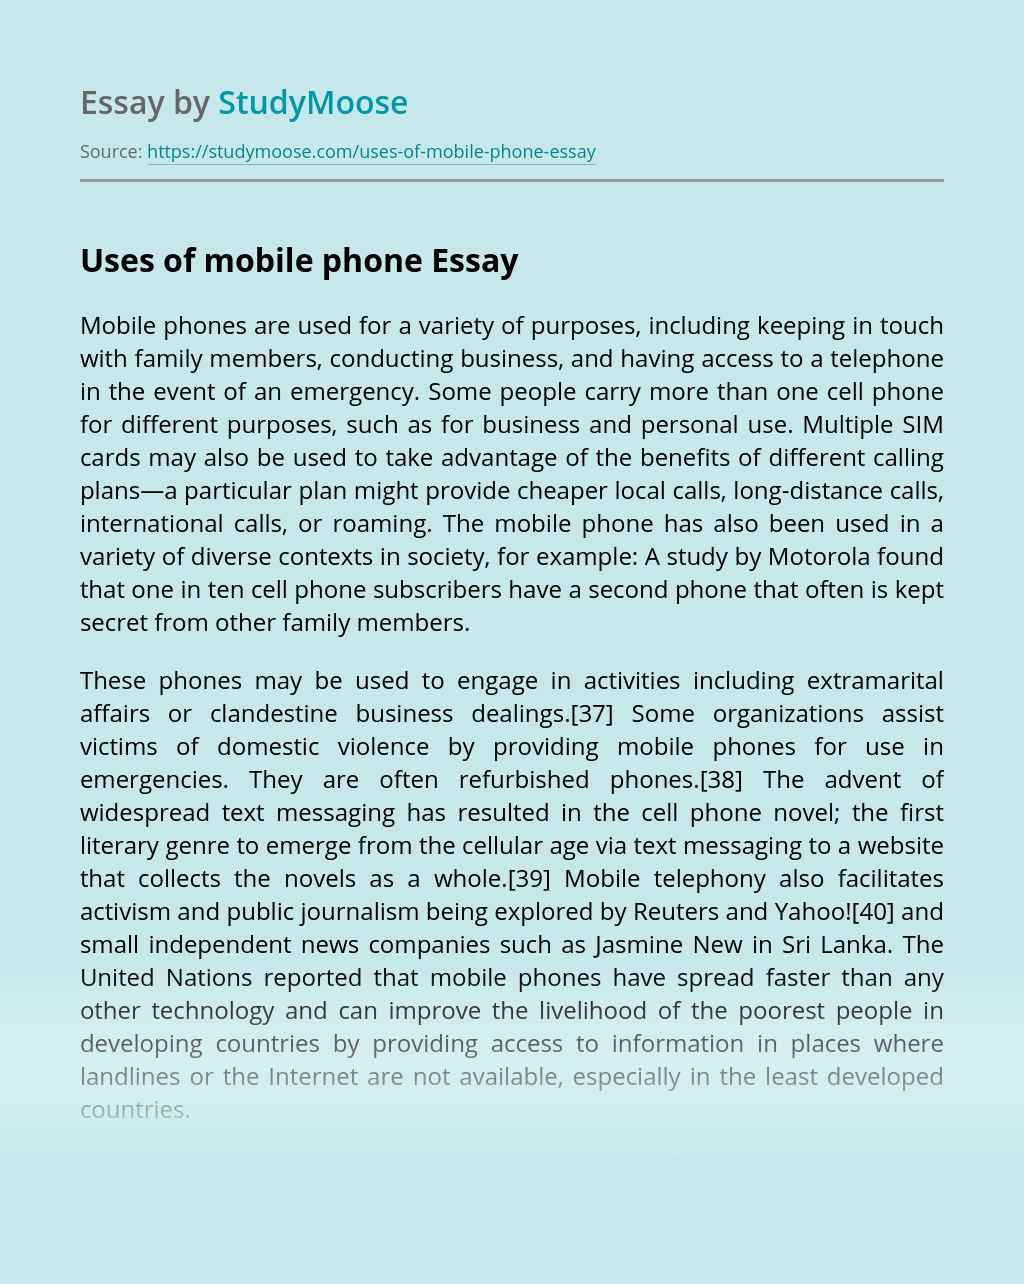 Uses of mobile phone